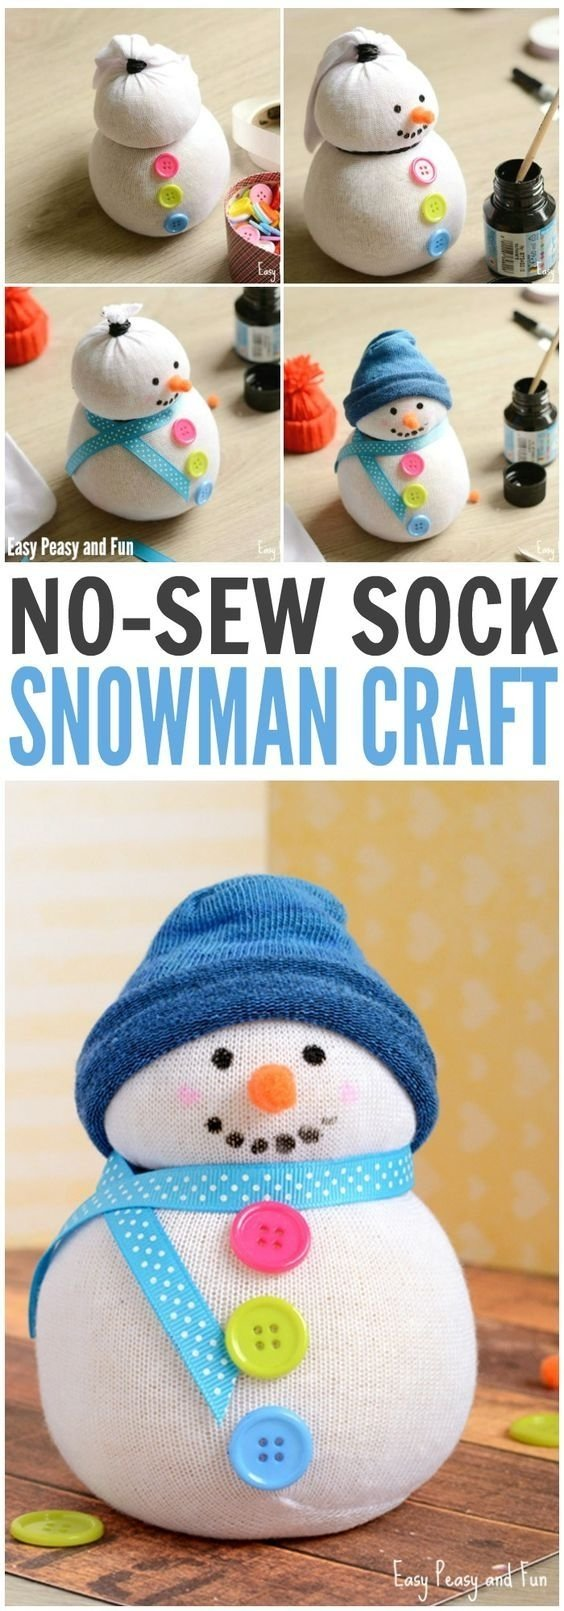 10 Fabulous Christmas Craft Gift Ideas For Kids no sew sock snowman craft sock snowman snowman crafts and fun diy 2 2021